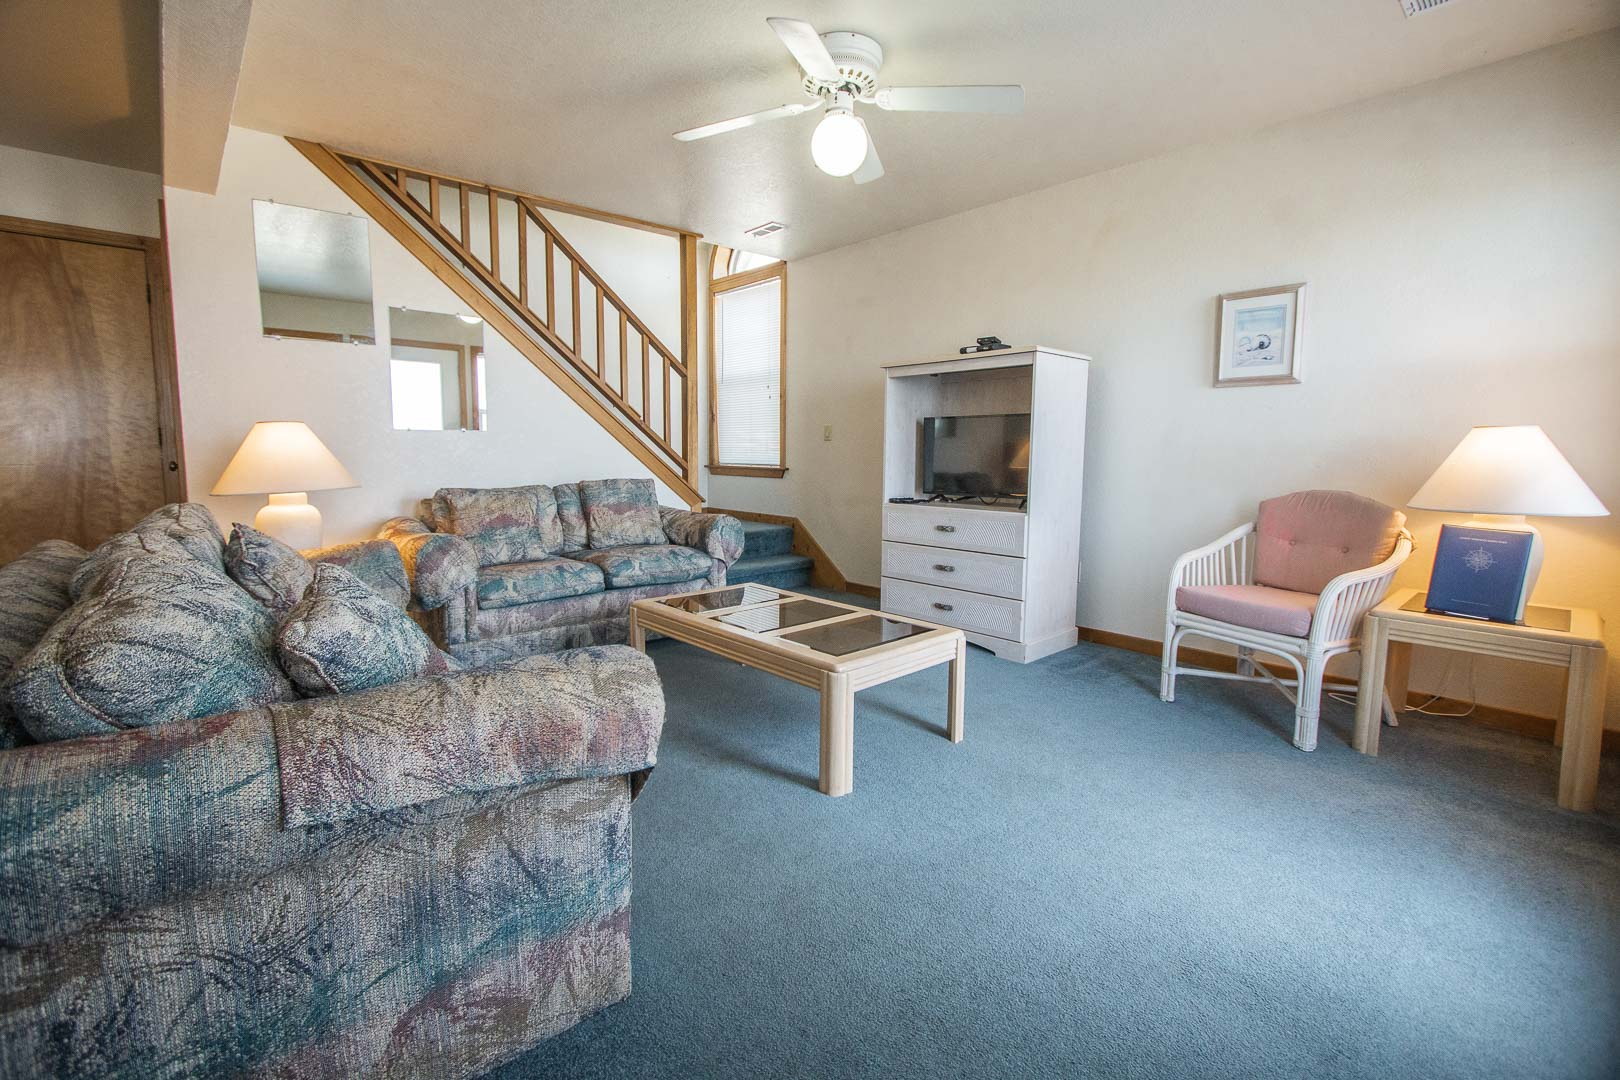 A cozy living room area at VRI's Barrier Island Station in North Carolina.